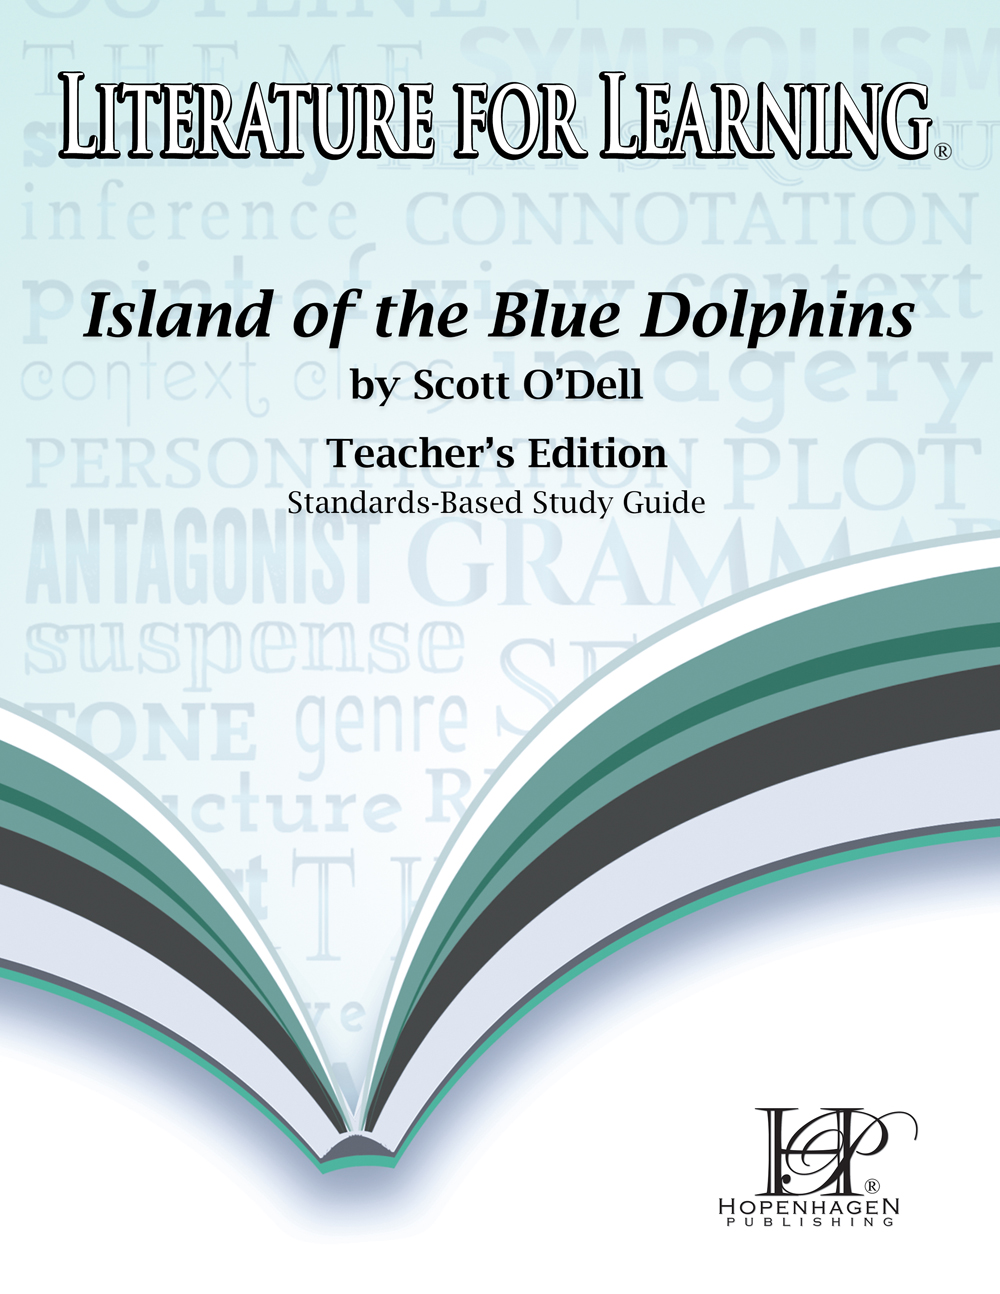 island of the blue dolphins study guide teachers edition island of the blue dolphins study guide teachers edition hopenhagen publishing